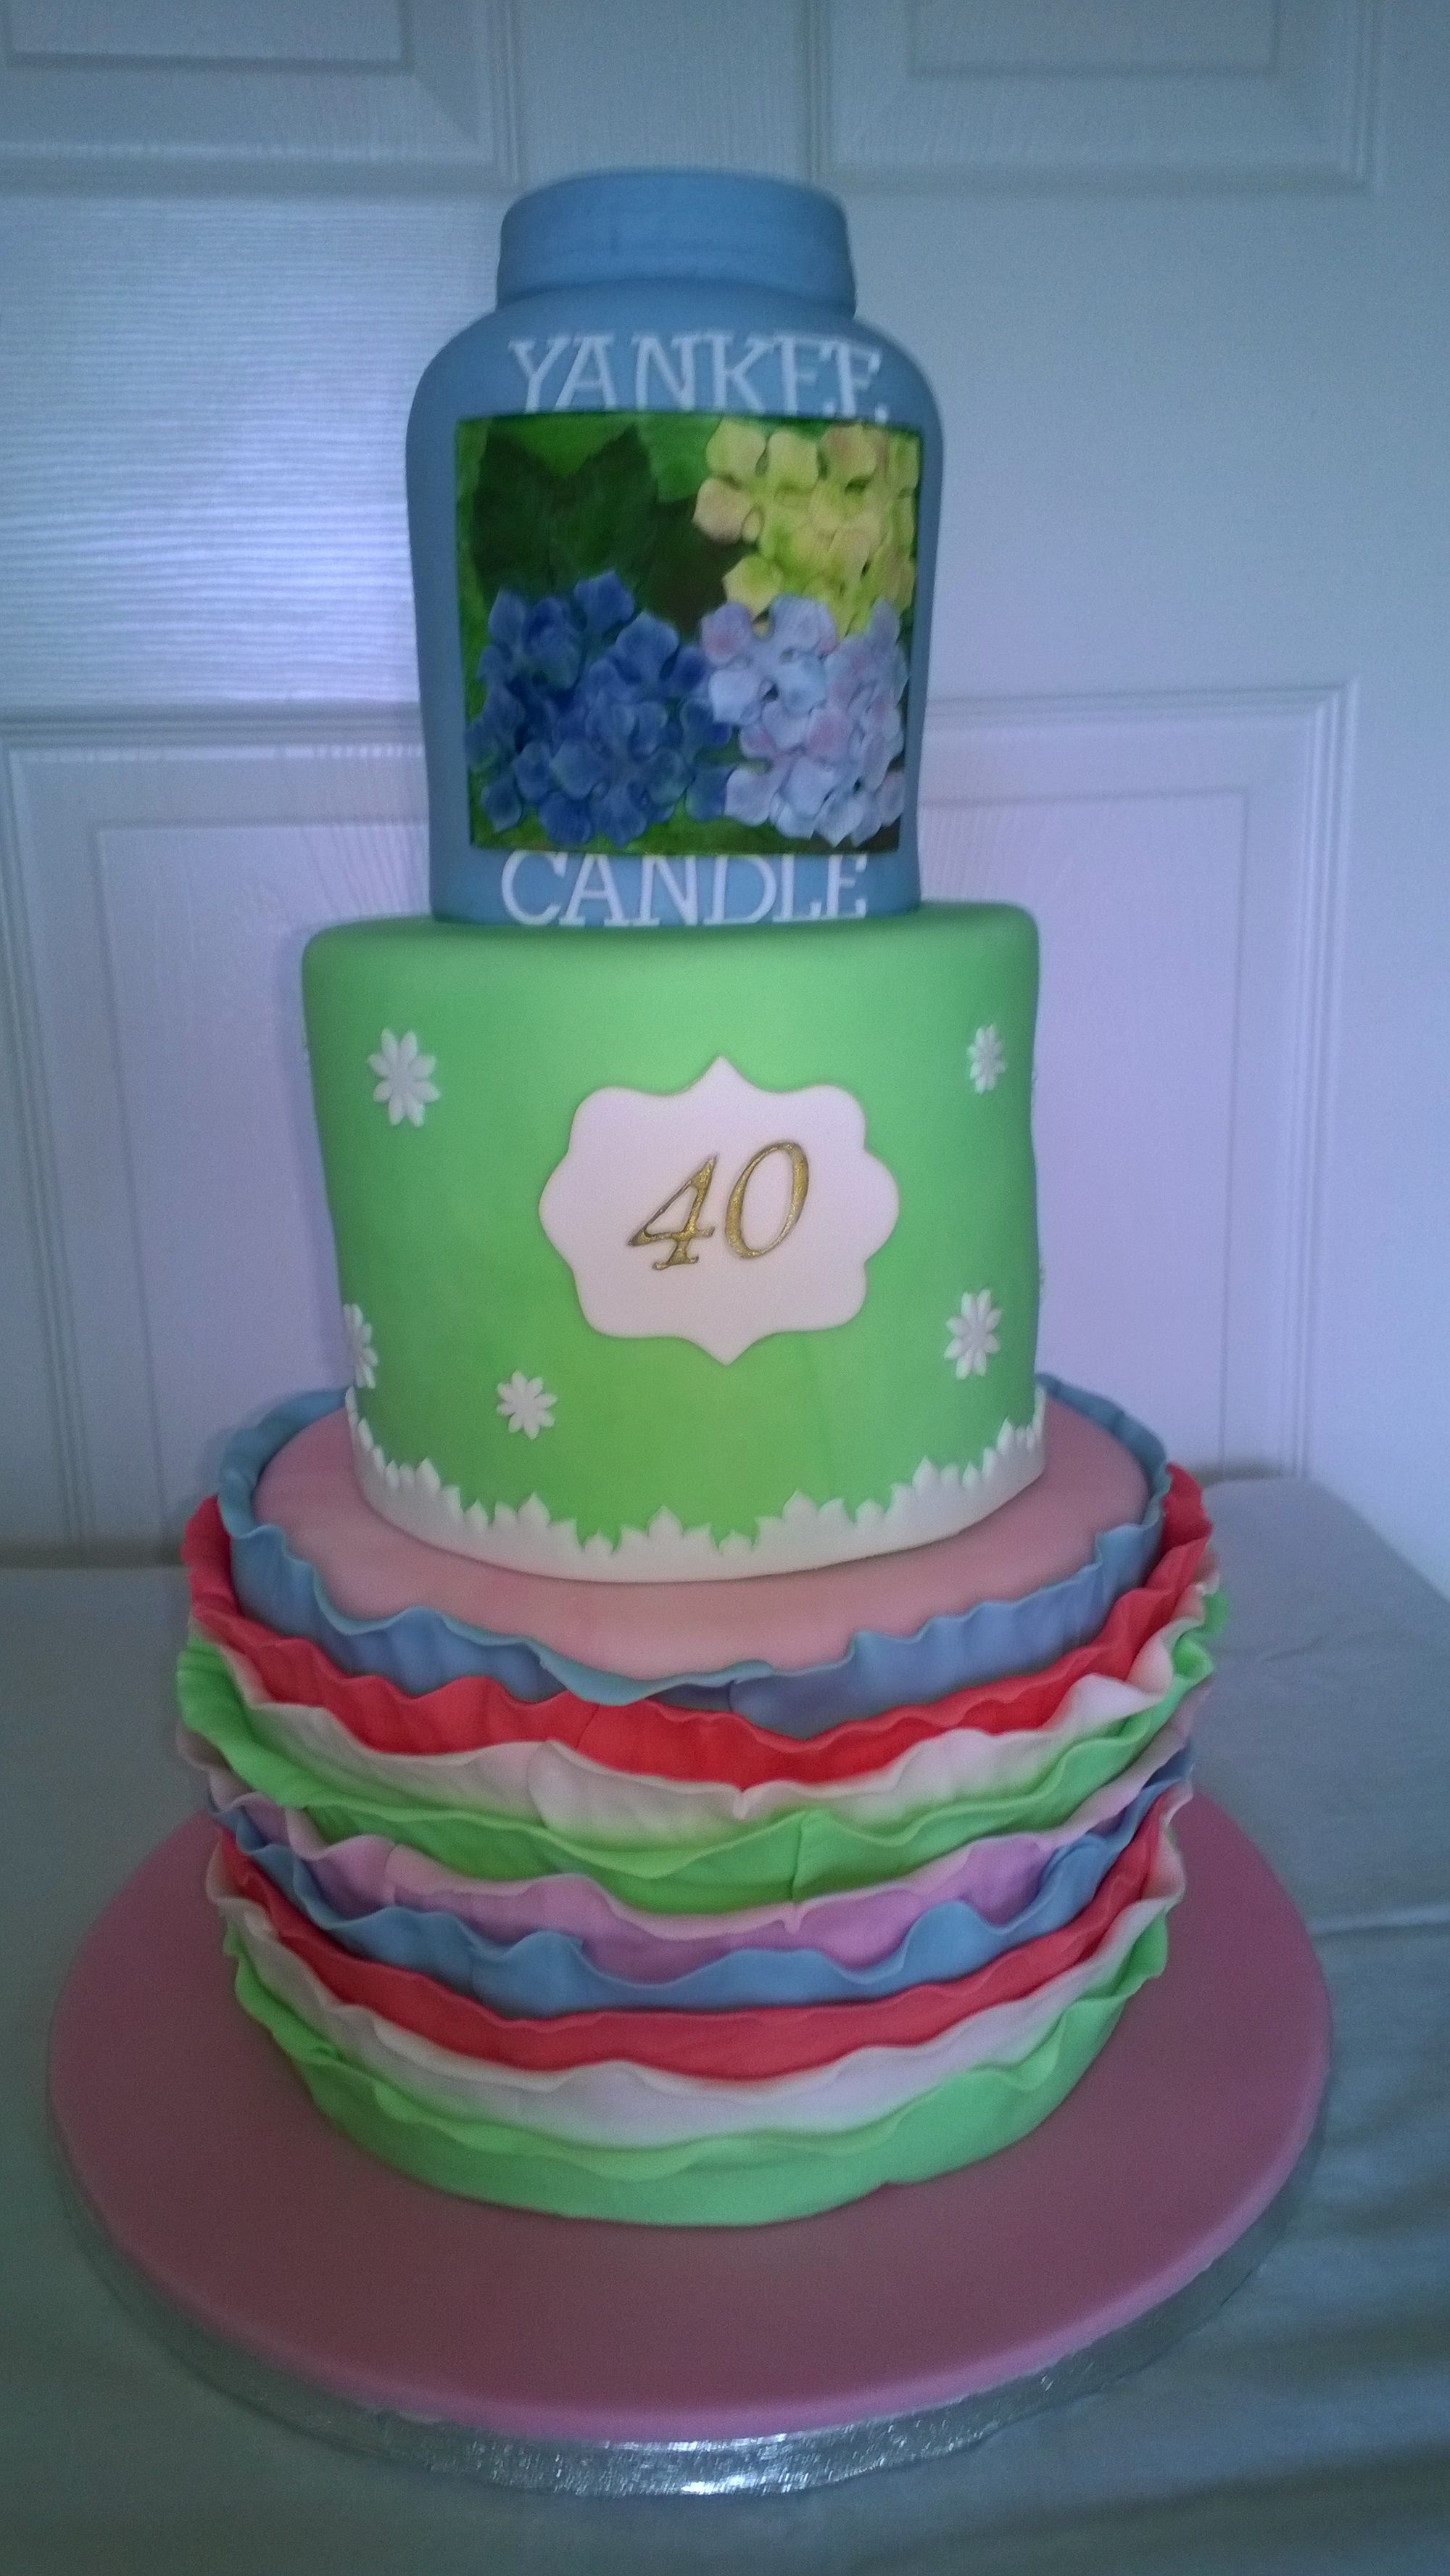 40th Birthday Cake Yankee Candle Top With Cath Kidston Type Colours